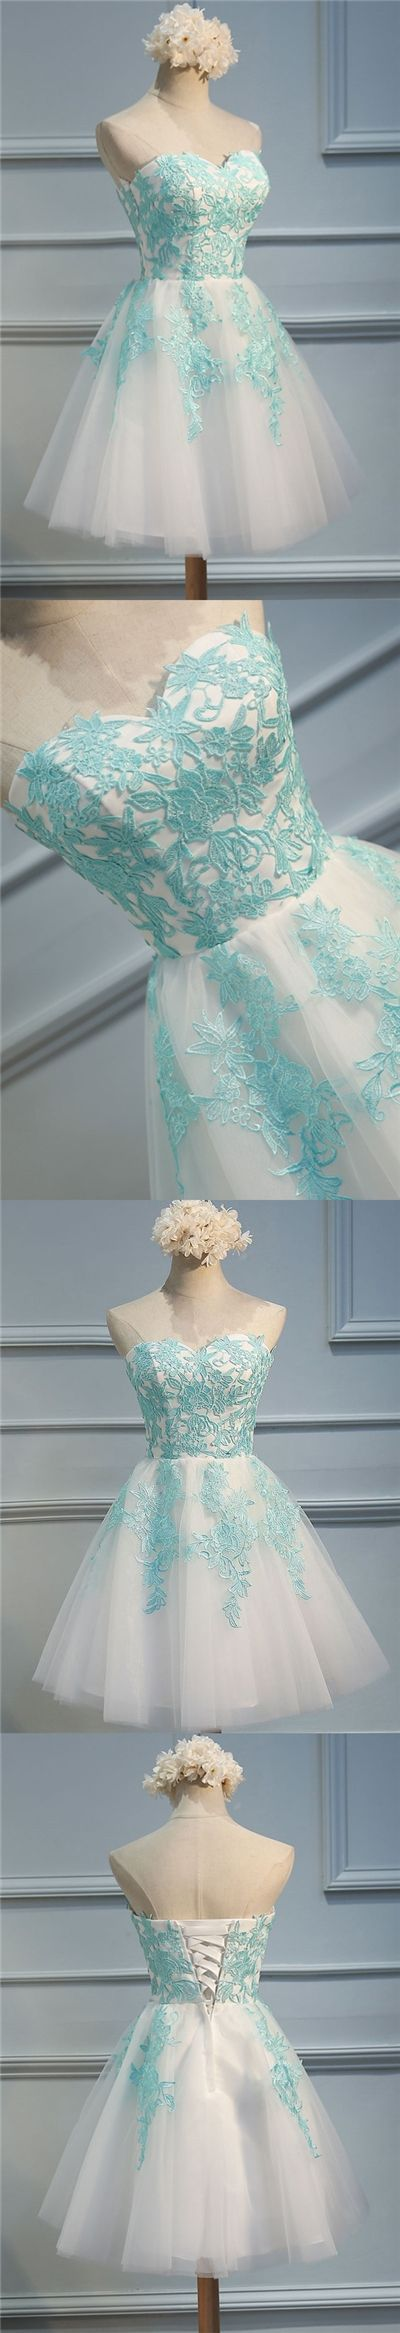 White Sweetheart Strapless Homecoming Dresses,Layers Tulle Appliques ...